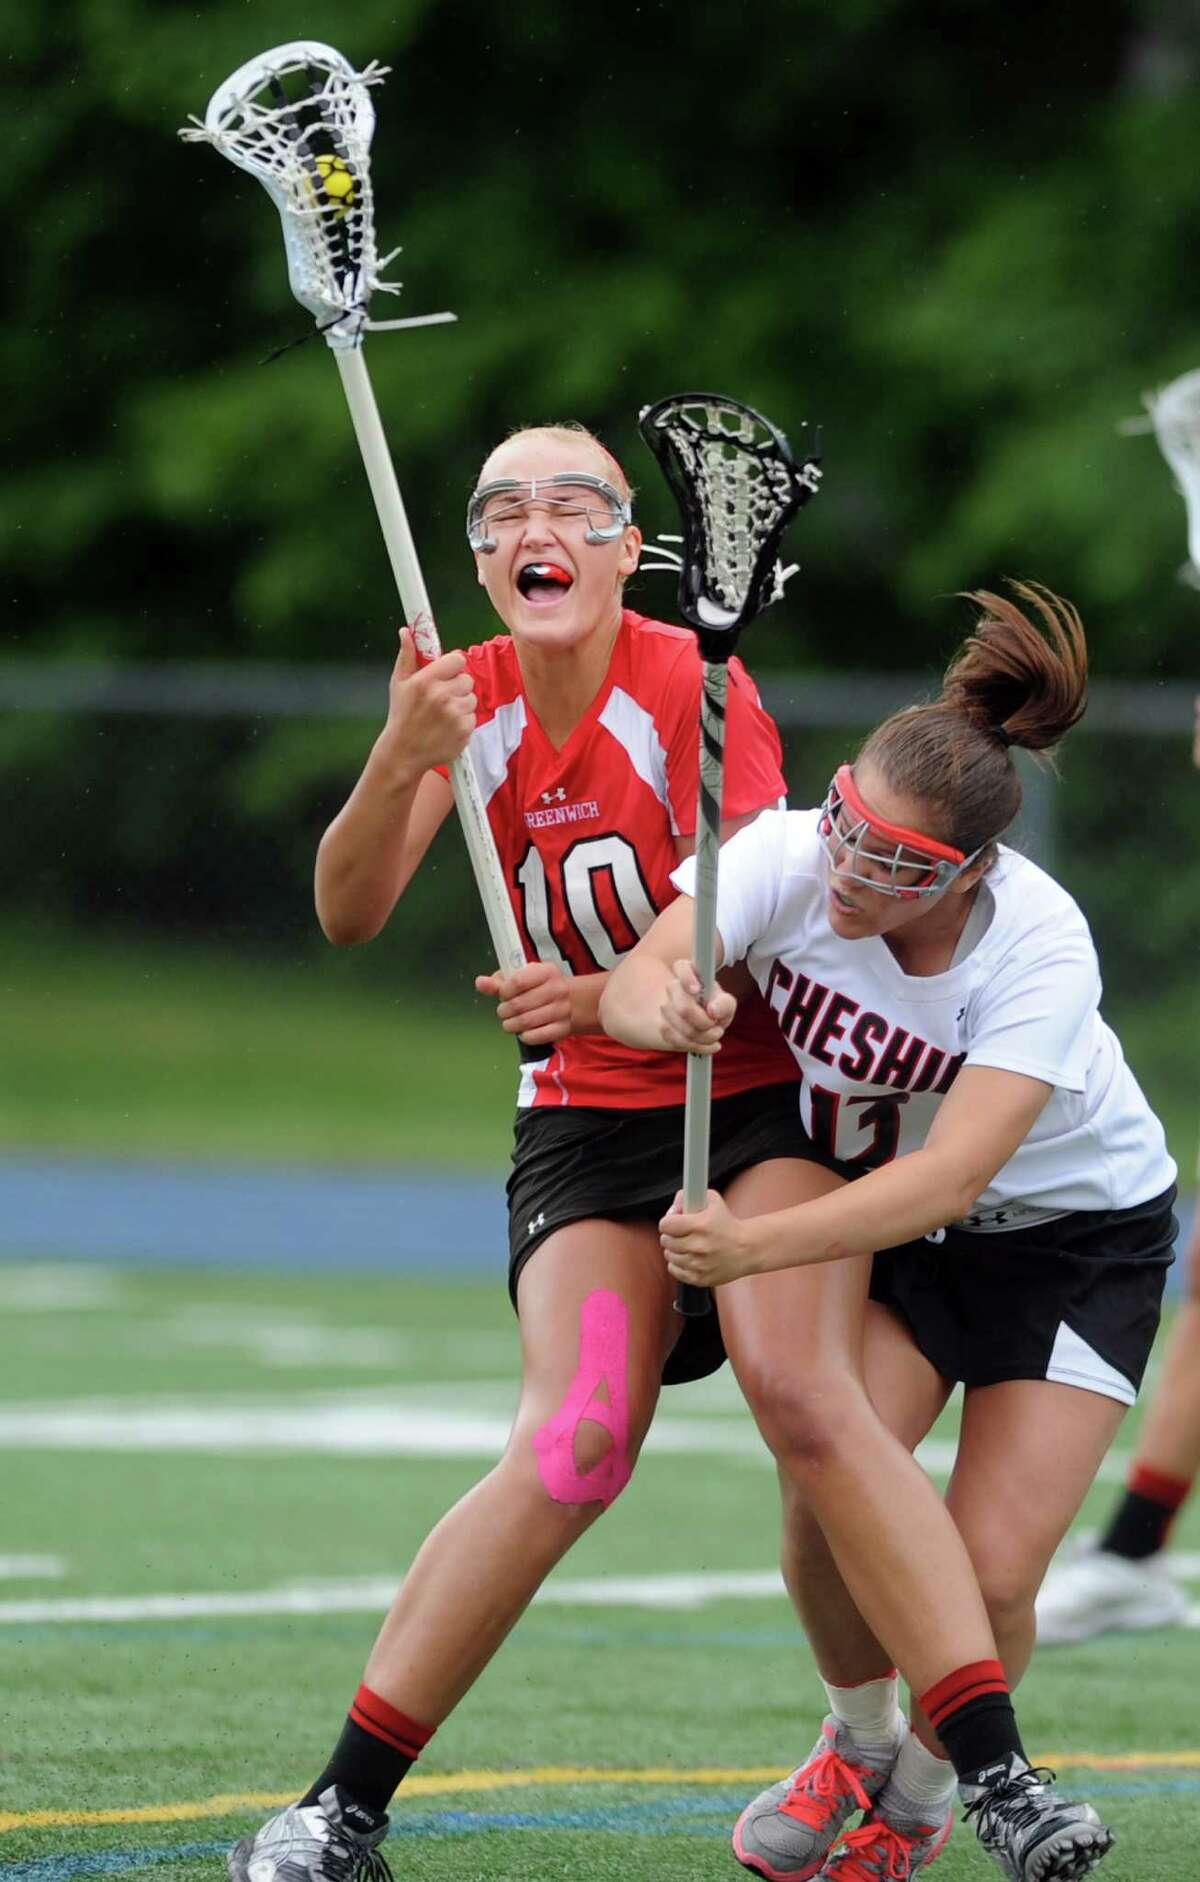 Greenwich's Emily Johnson controls the ball as Cheshire's Natalie Barnett slams into her during the Girls Lacrosse State Tournament Class L final Saturday, June 9, 2012 at Bunnell High School in Stratford, Conn.